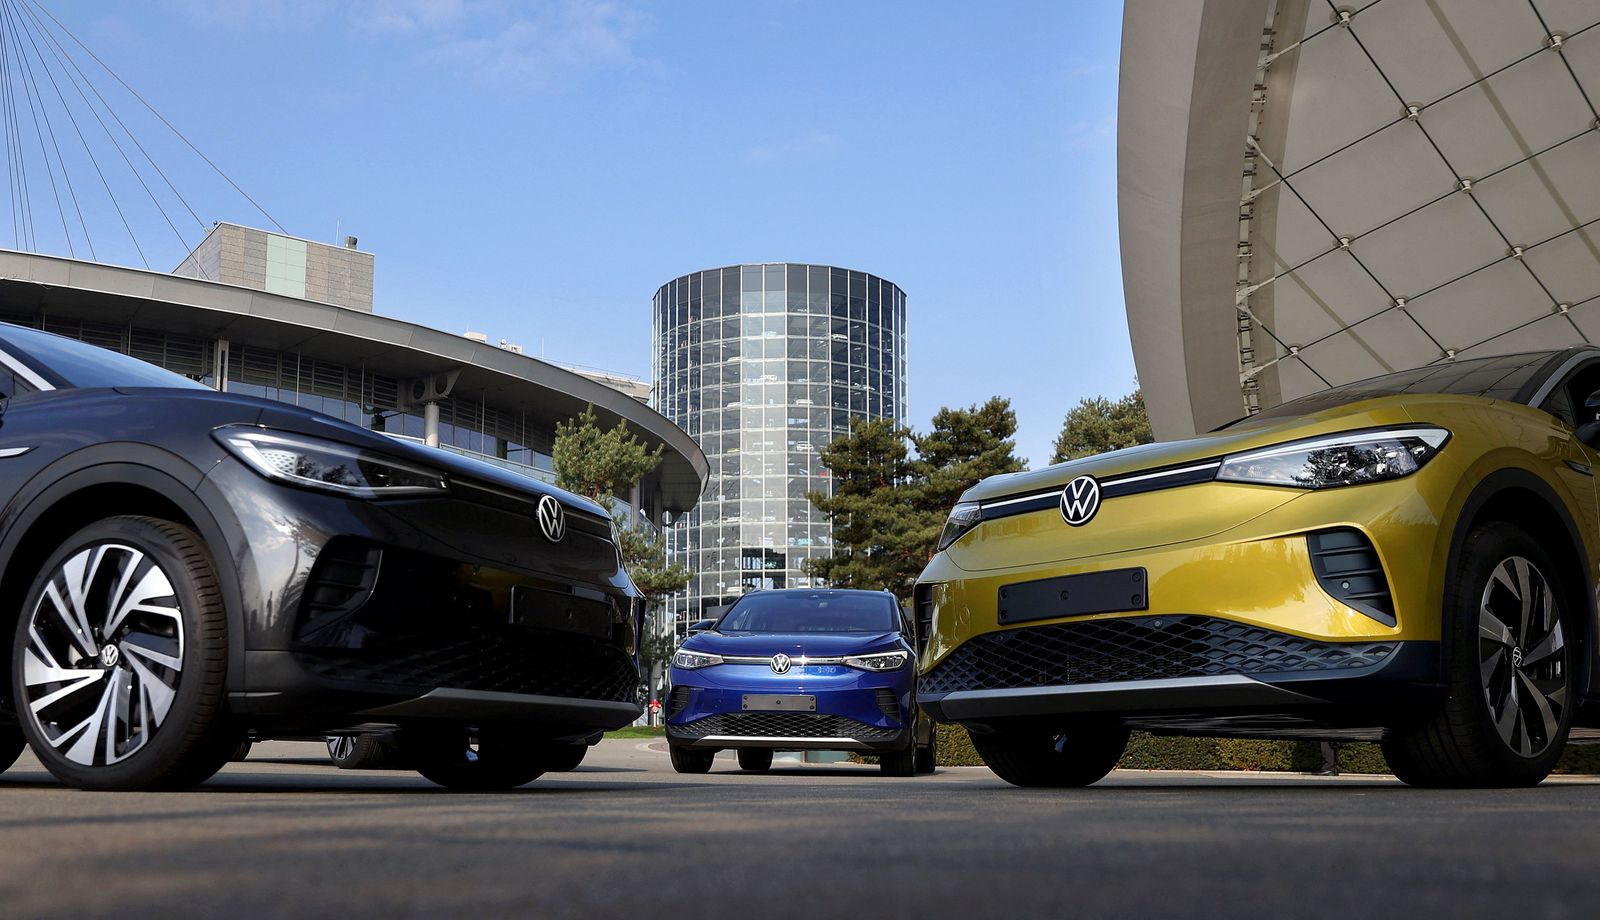 FILES-US-GERMANY-AUTOMOBILE-ENVIRONMENT